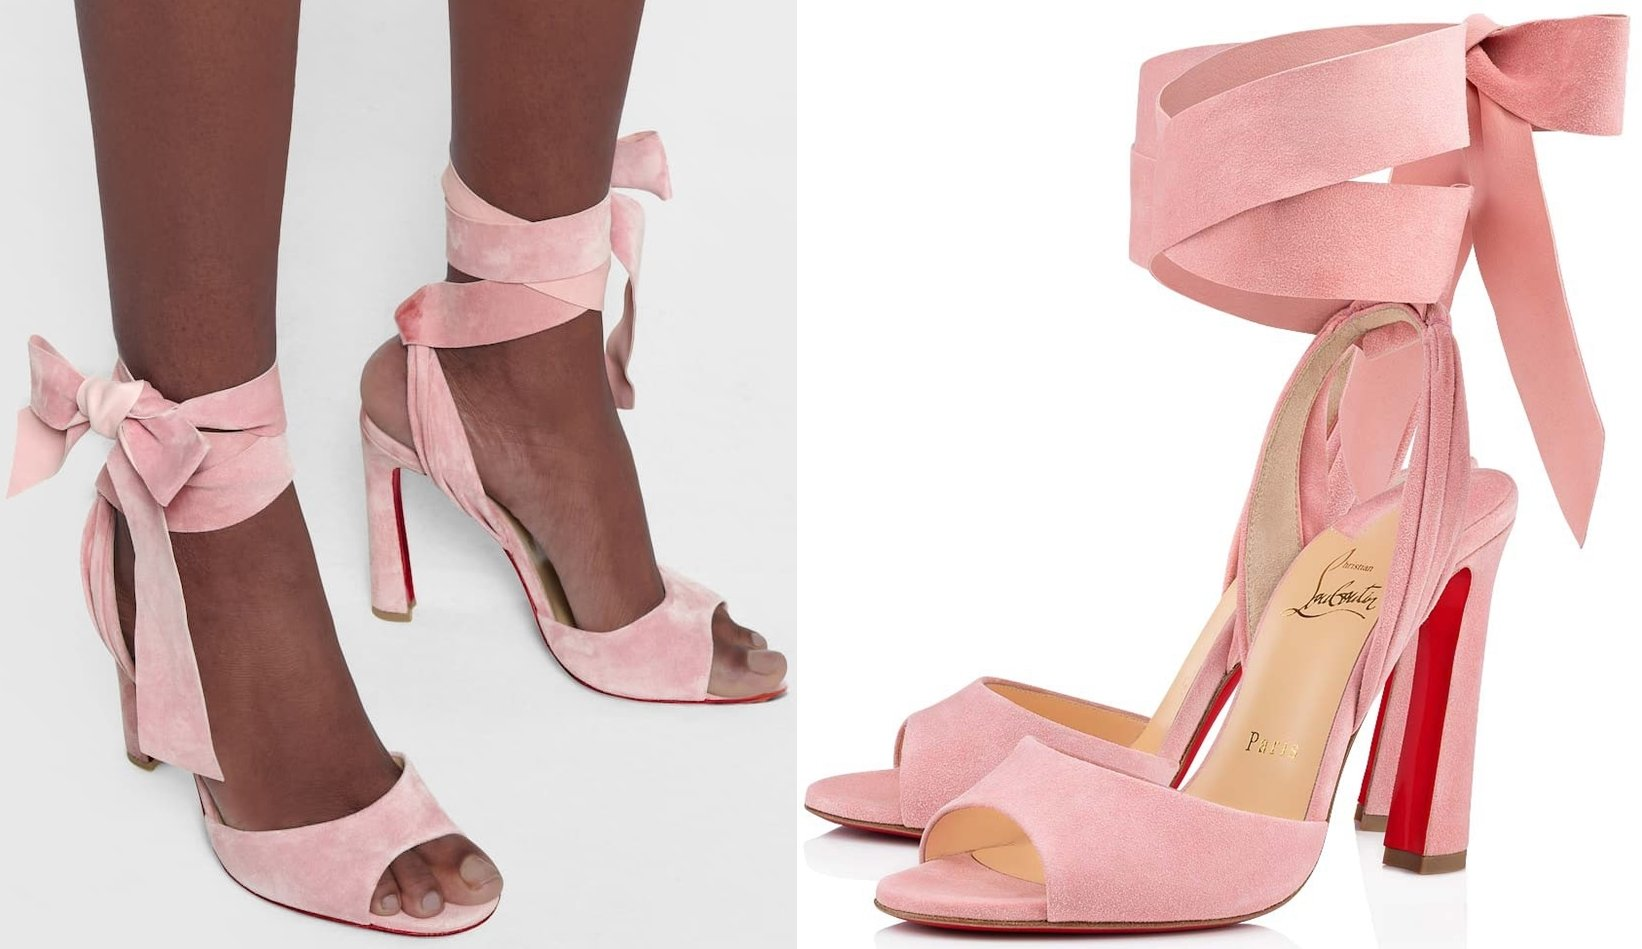 In a dusty pink hue, the peep-toe style is made from suede with ankle ties that resemble oversized ribbon-bows